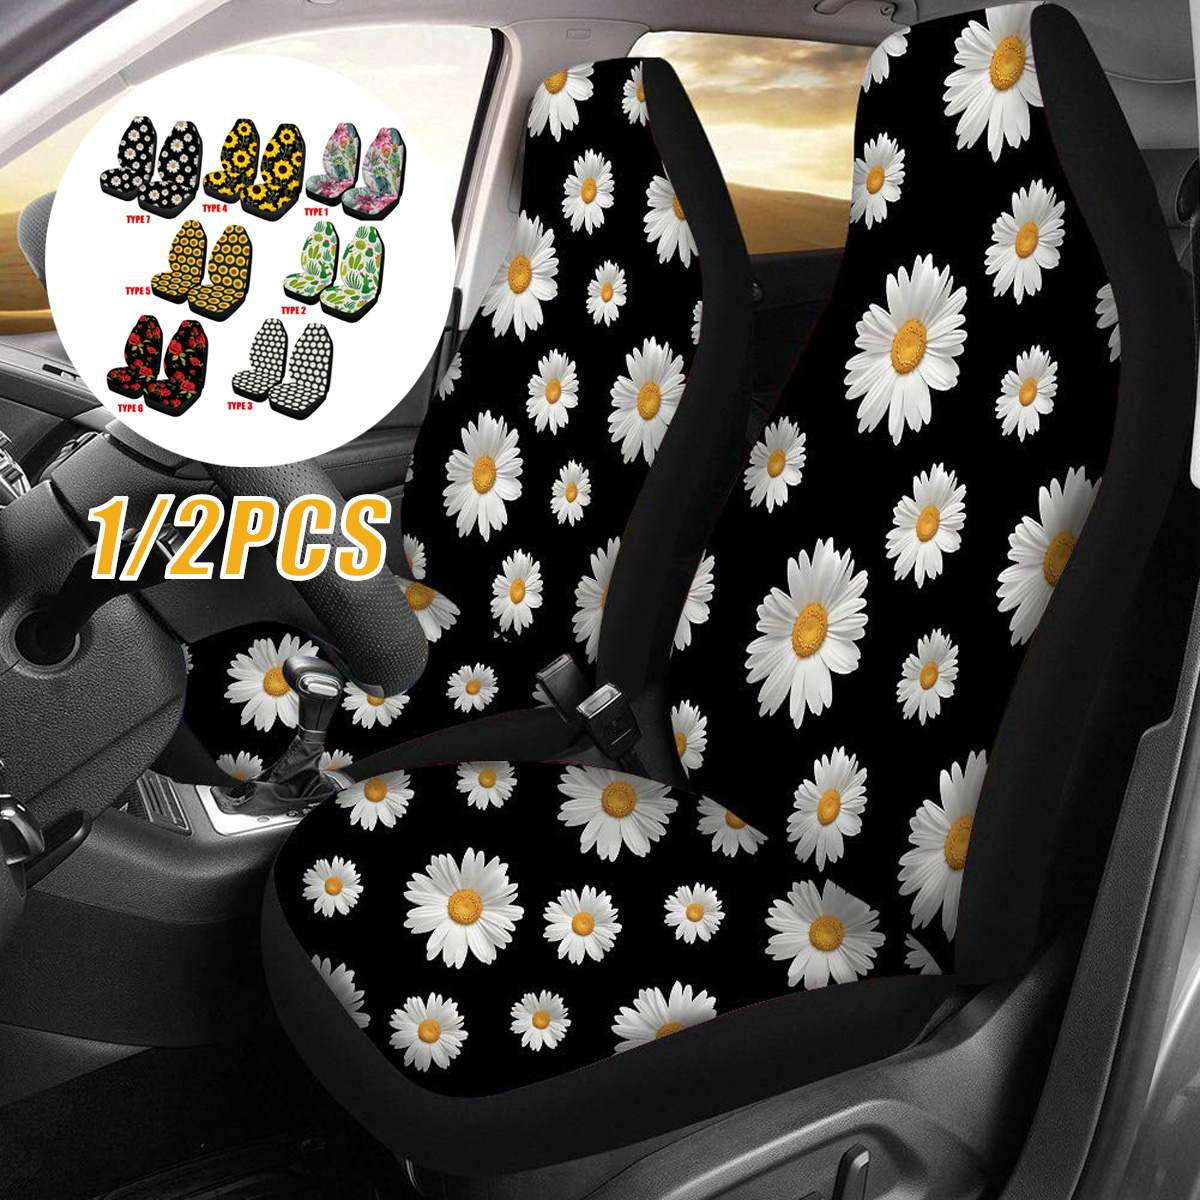 2pcs Front Car Seat Covers Automobile Seat Protector Soft Universal Fashion Pattern Plant for Most Car SUV Truck Van|Automobiles Seat Covers| |  - title=